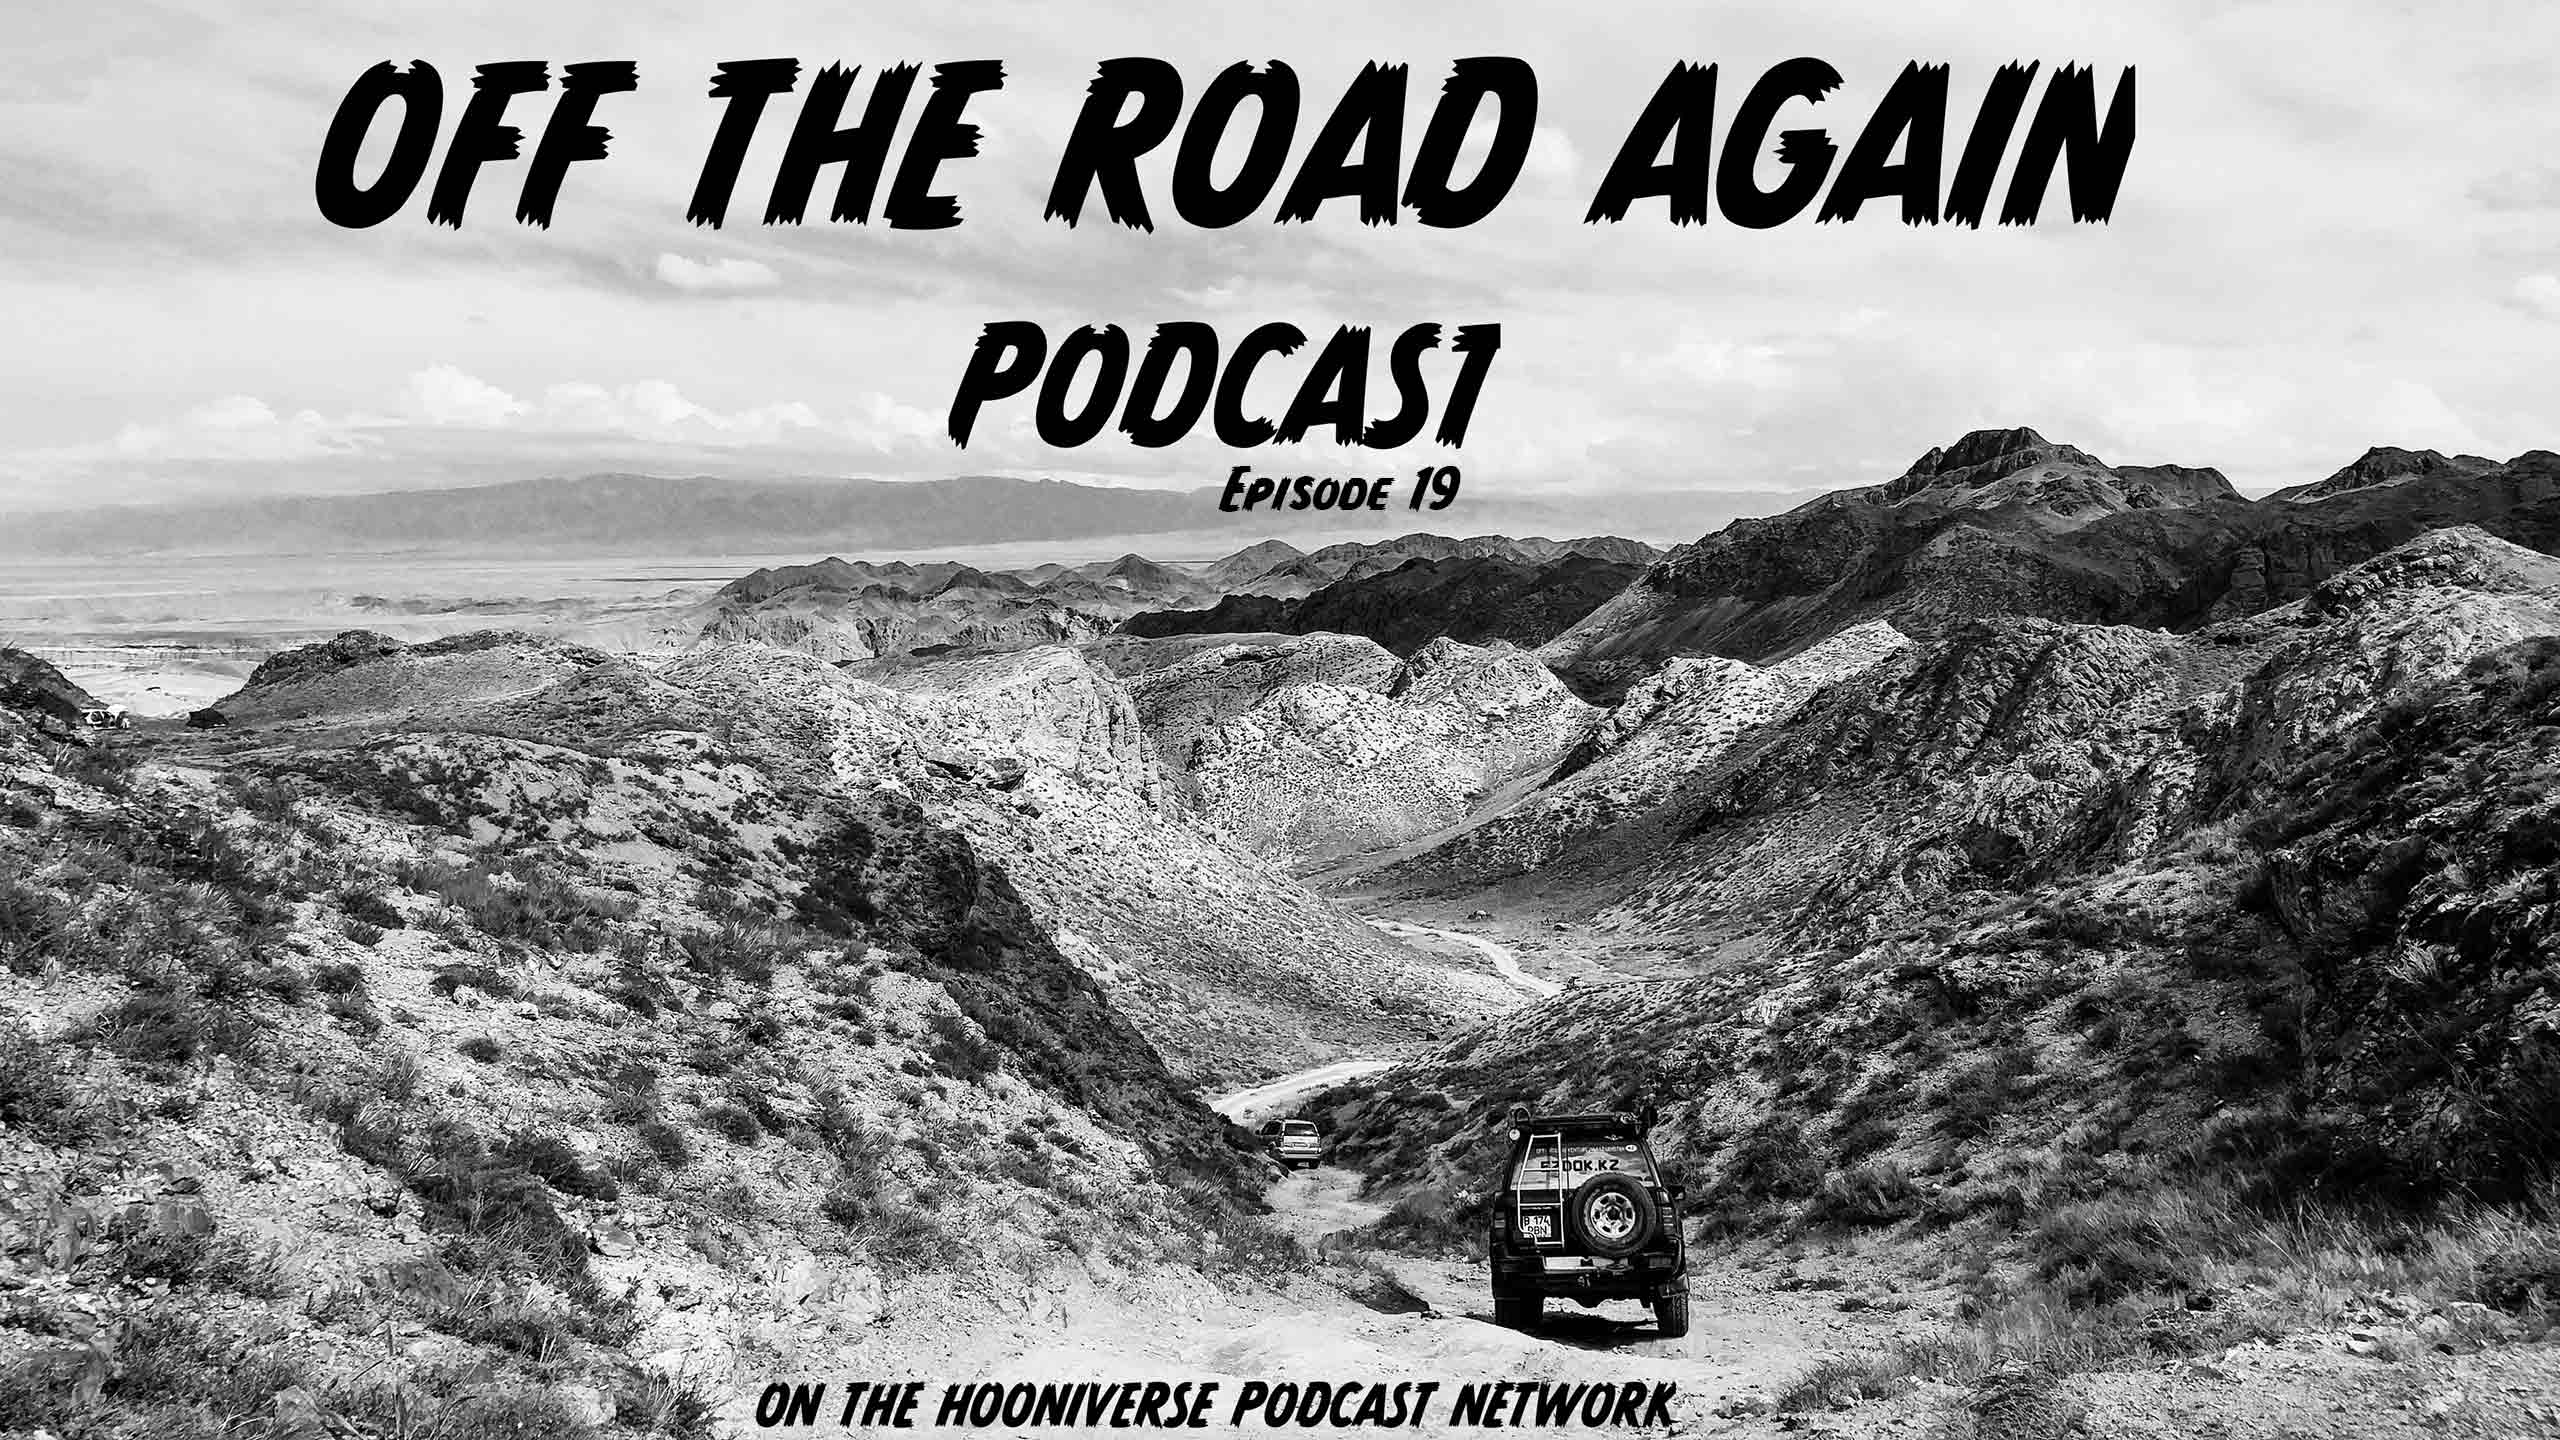 Off The Road Again Podcast - Episode 19